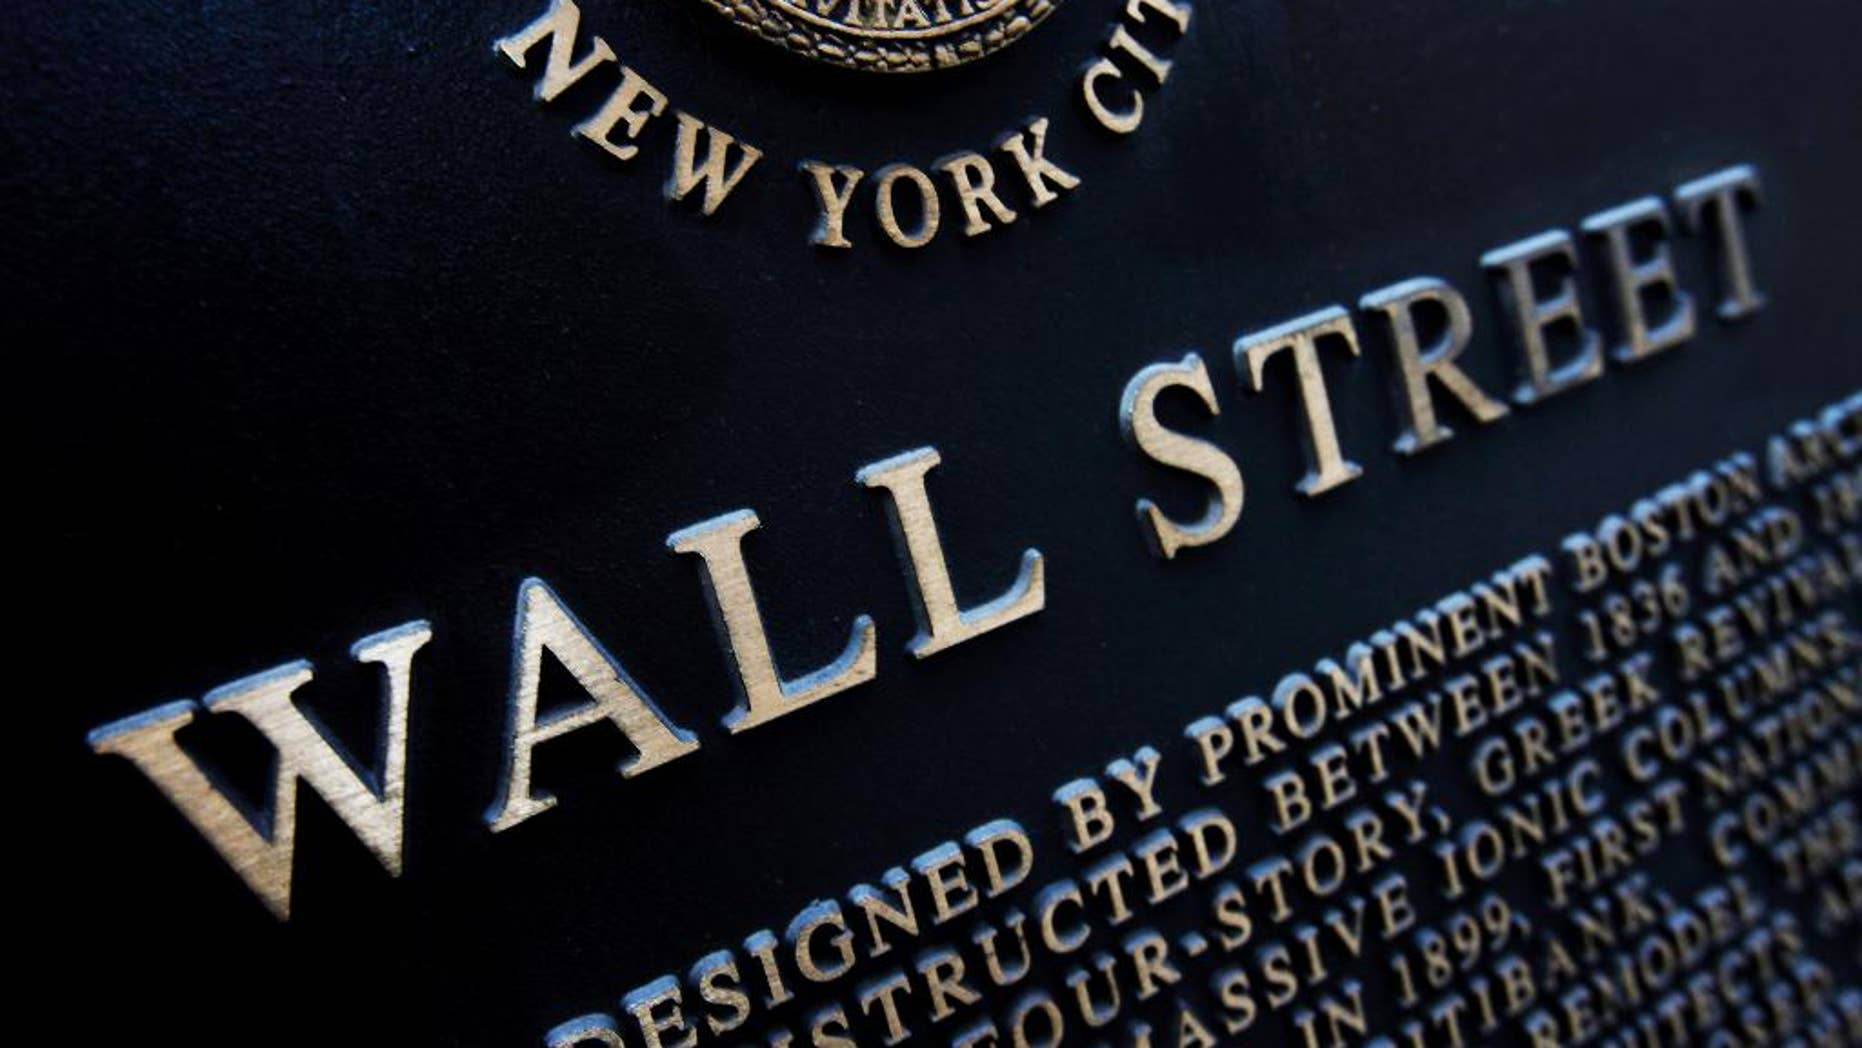 FILE - This Jan. 4, 2010 file photo shows an historic marker on Wall Street in New York.  Japan's stock benchmark closed above the 20,000-level for the first time in 15 years Wednesday, April 22, 2015, encouraged by the country's first monthly trade surplus since 2012. European stocks fell, however, and Wall Street was expected to open lower. (AP Photo/Mark Lennihan, File)